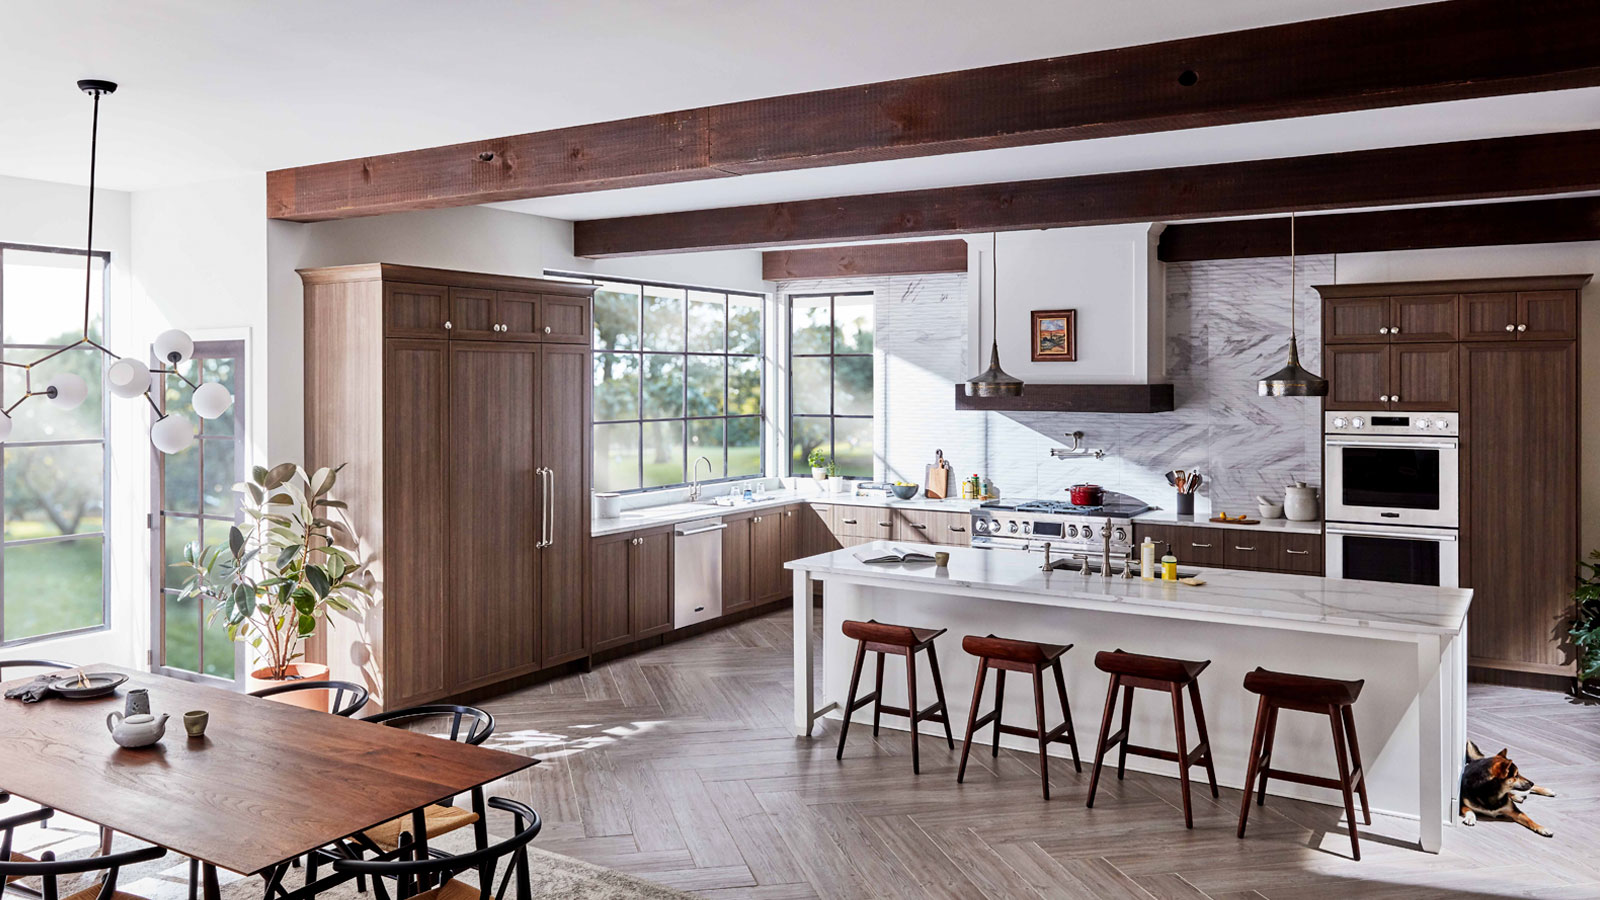 Wide full view of LG Signature Kitchen Country Lifestyle, with dining area